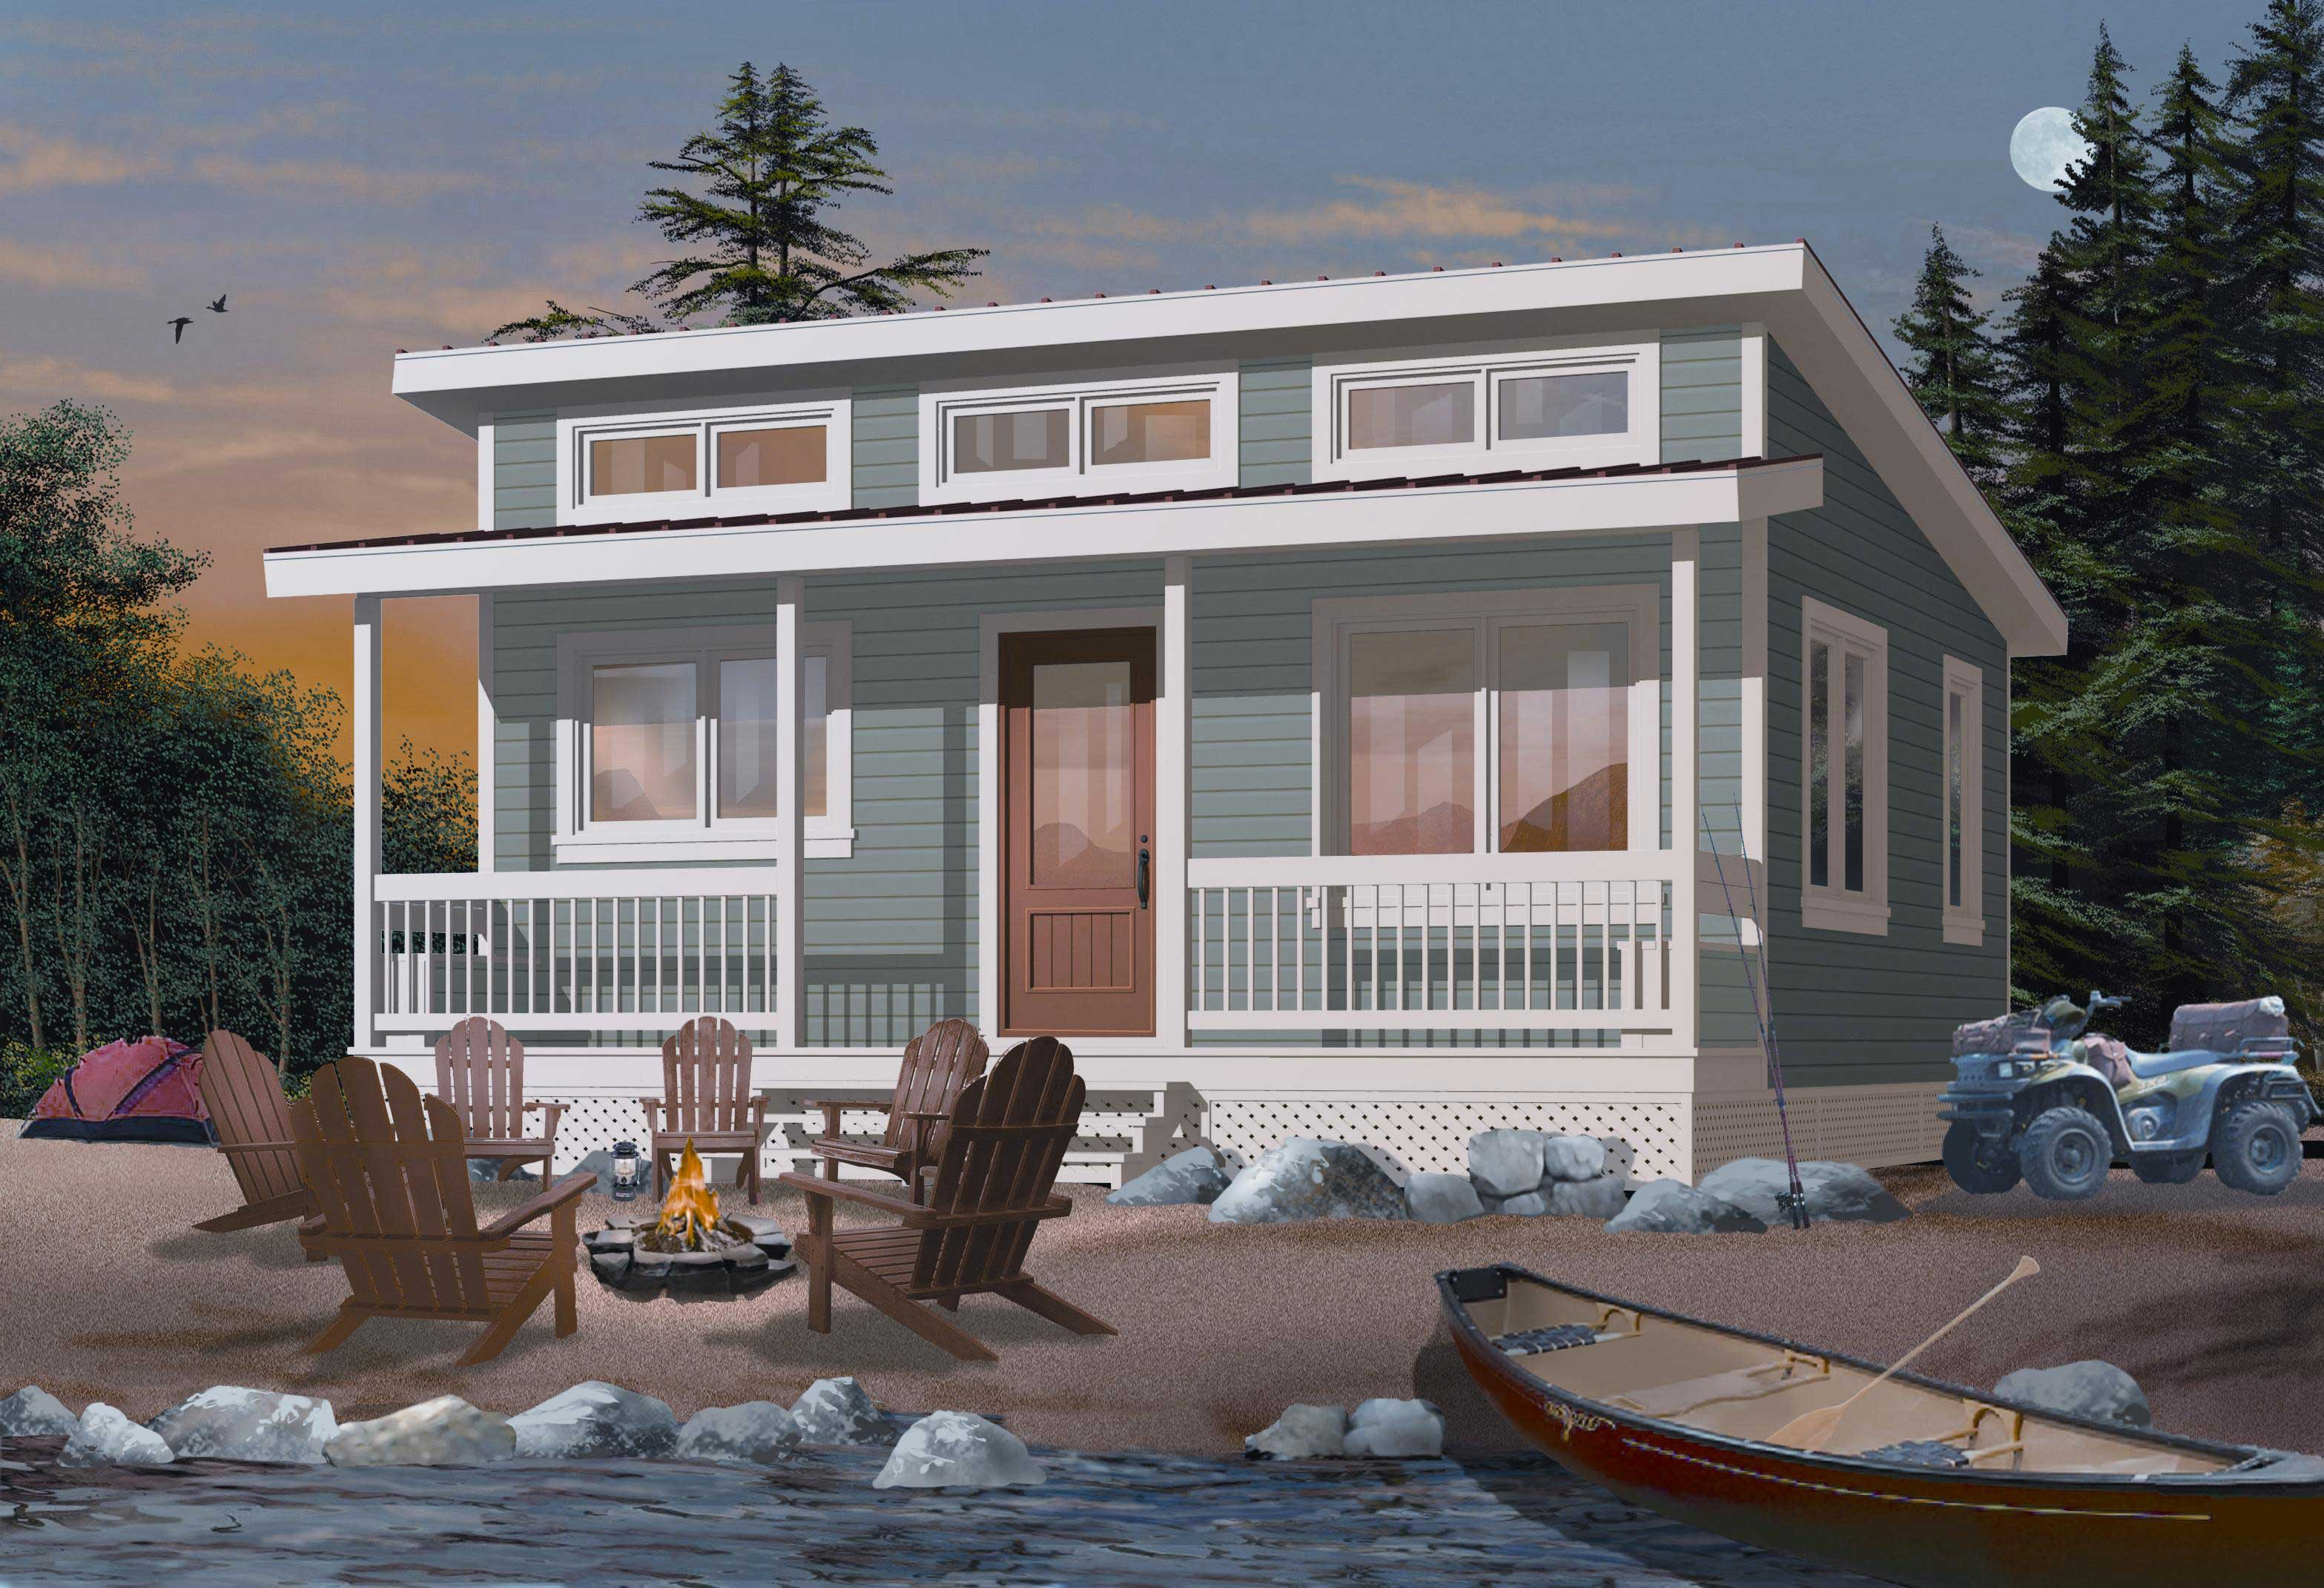 #126-1000  This is a very detailed rendering of these Small House Plans  Vacation Home.